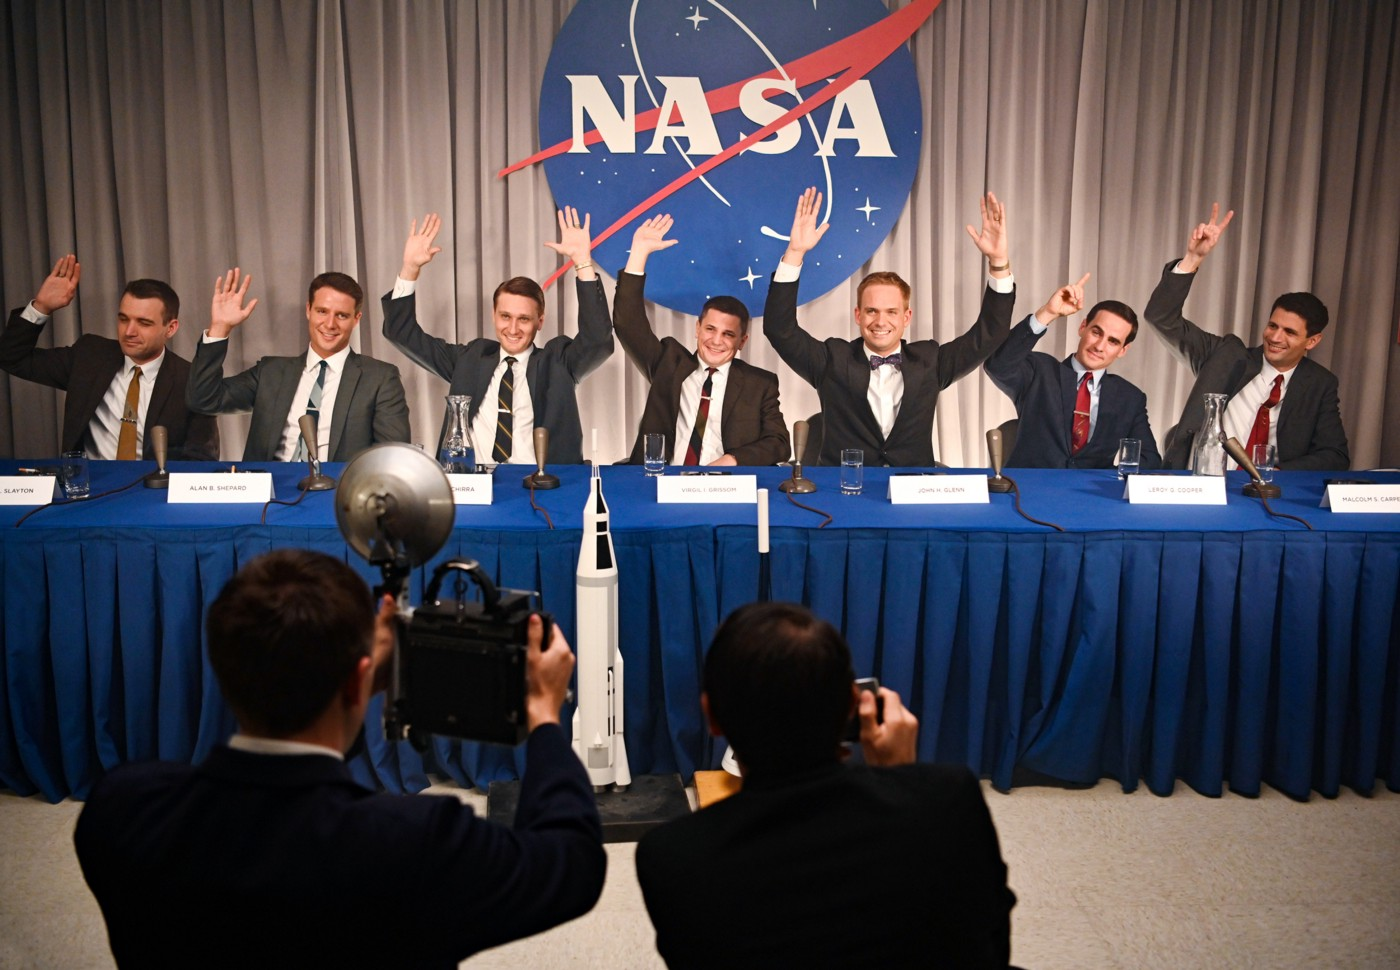 A group of men in suits at a long table at a press conference, raising their hands while photographers take their picture.